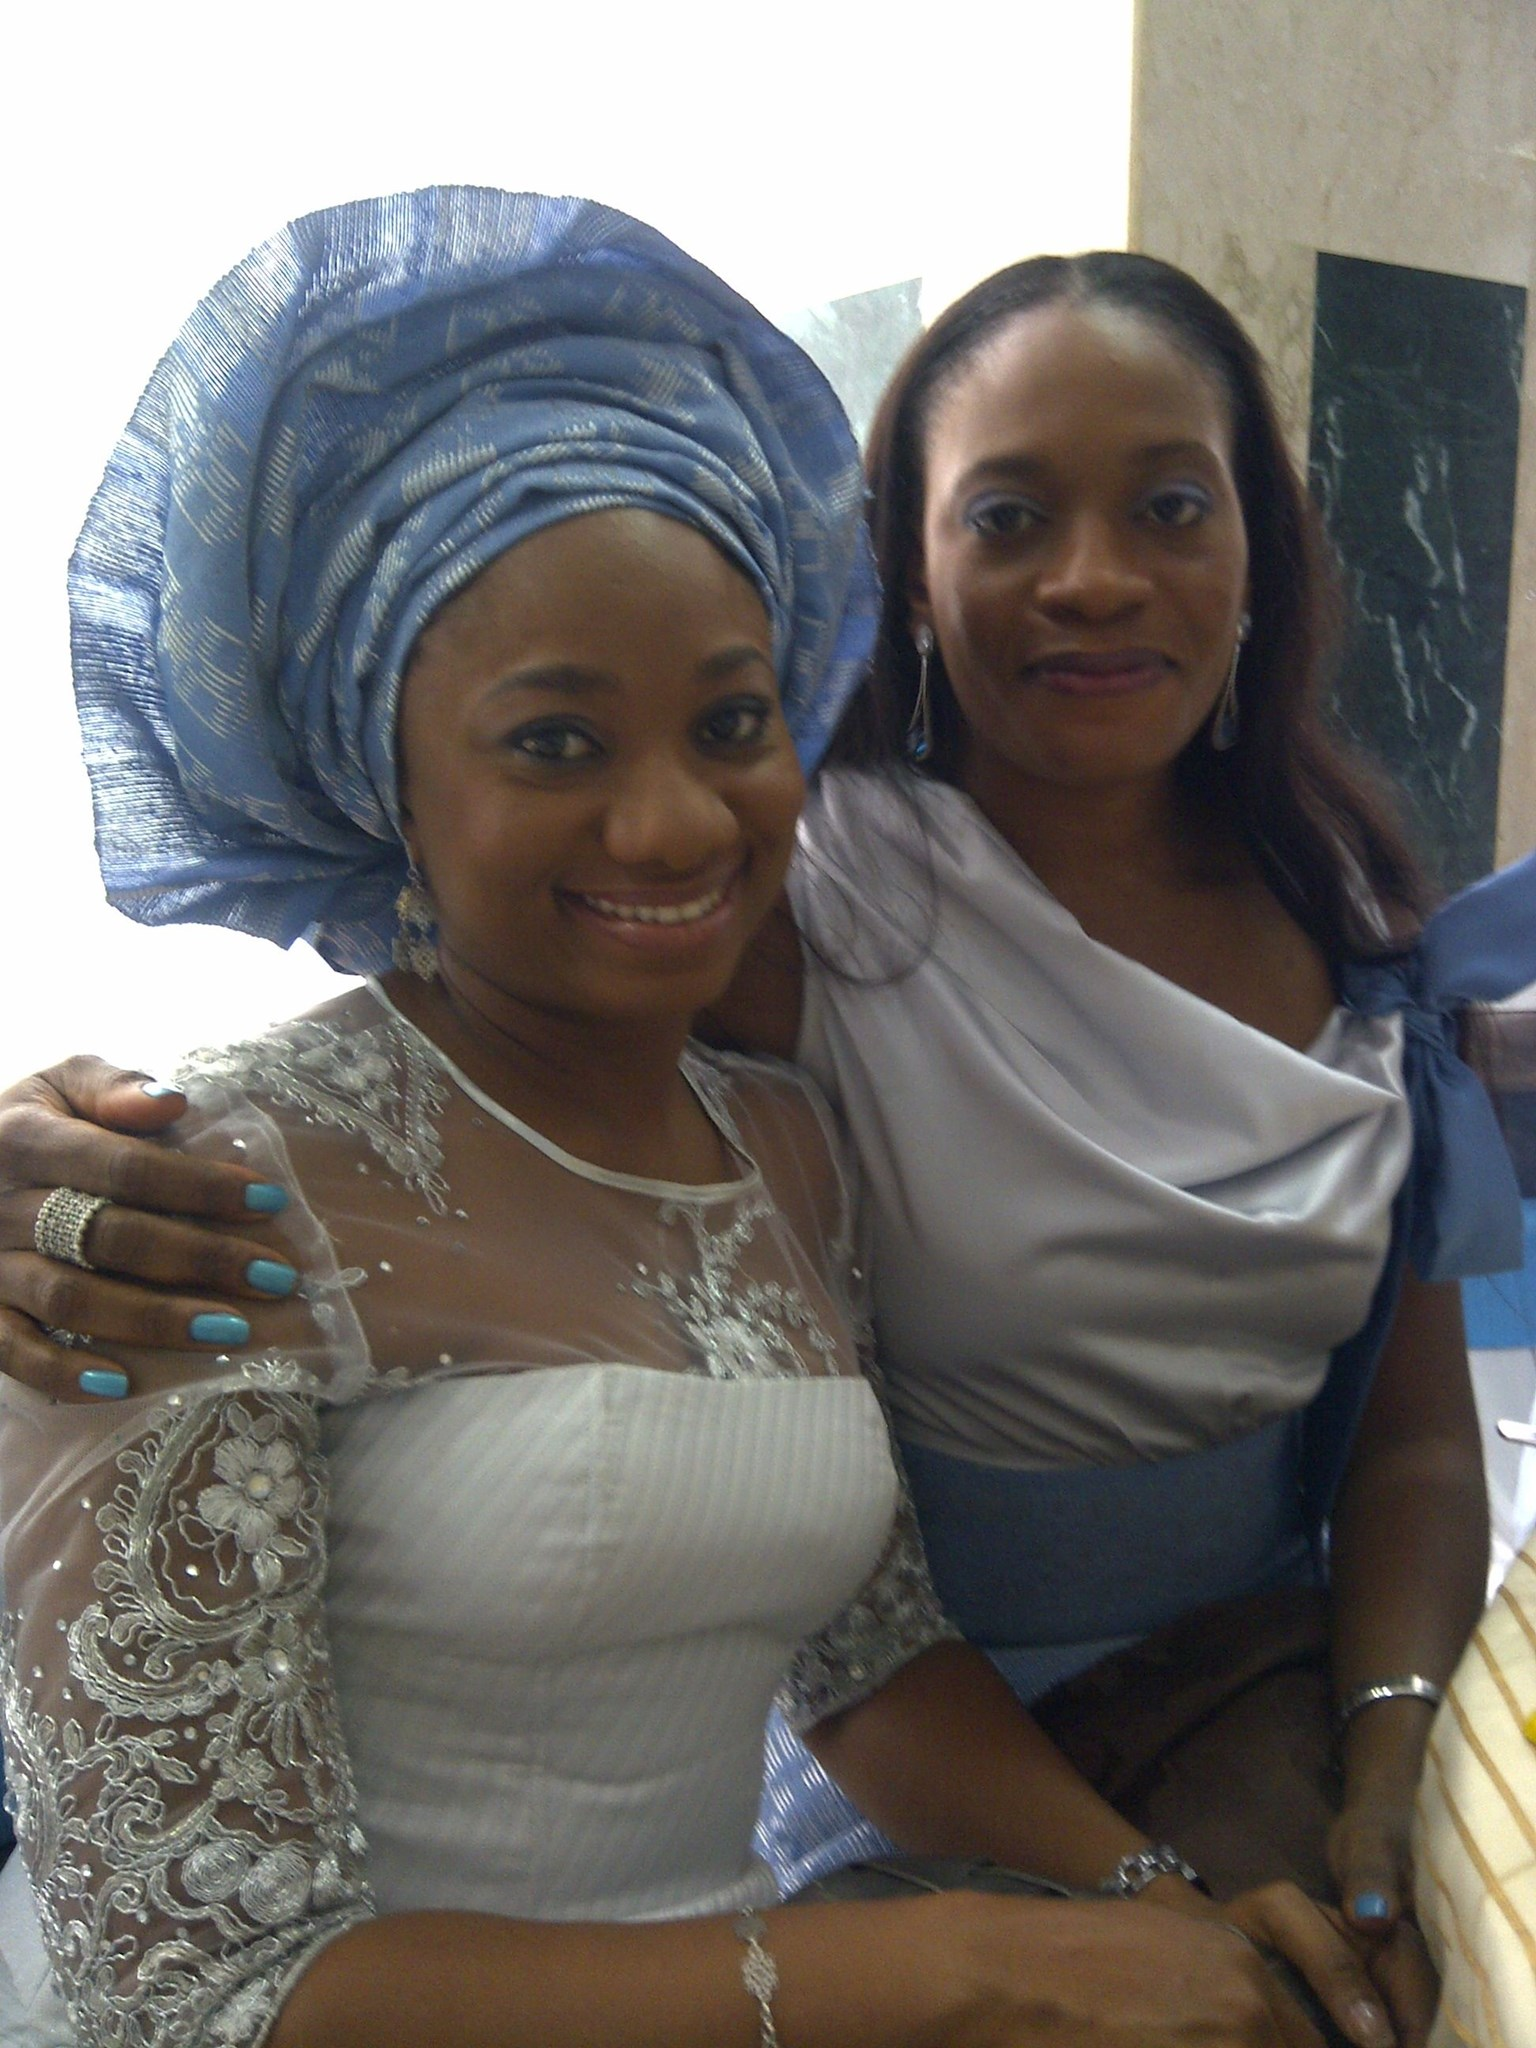 At Alaba's wedding